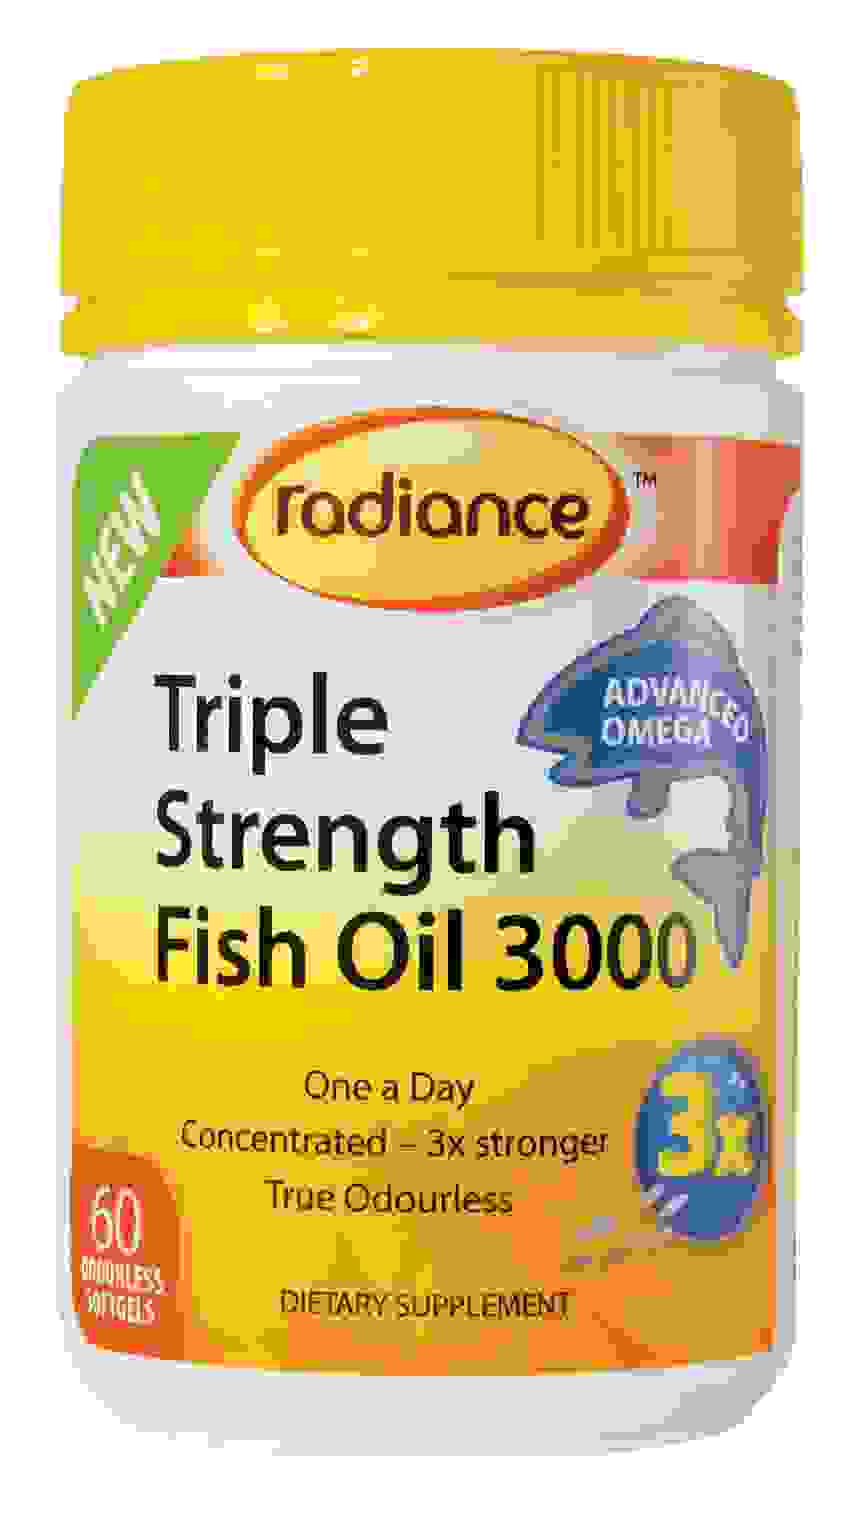 Radiance Triple Strength Fish Oil 3000 60 Caps